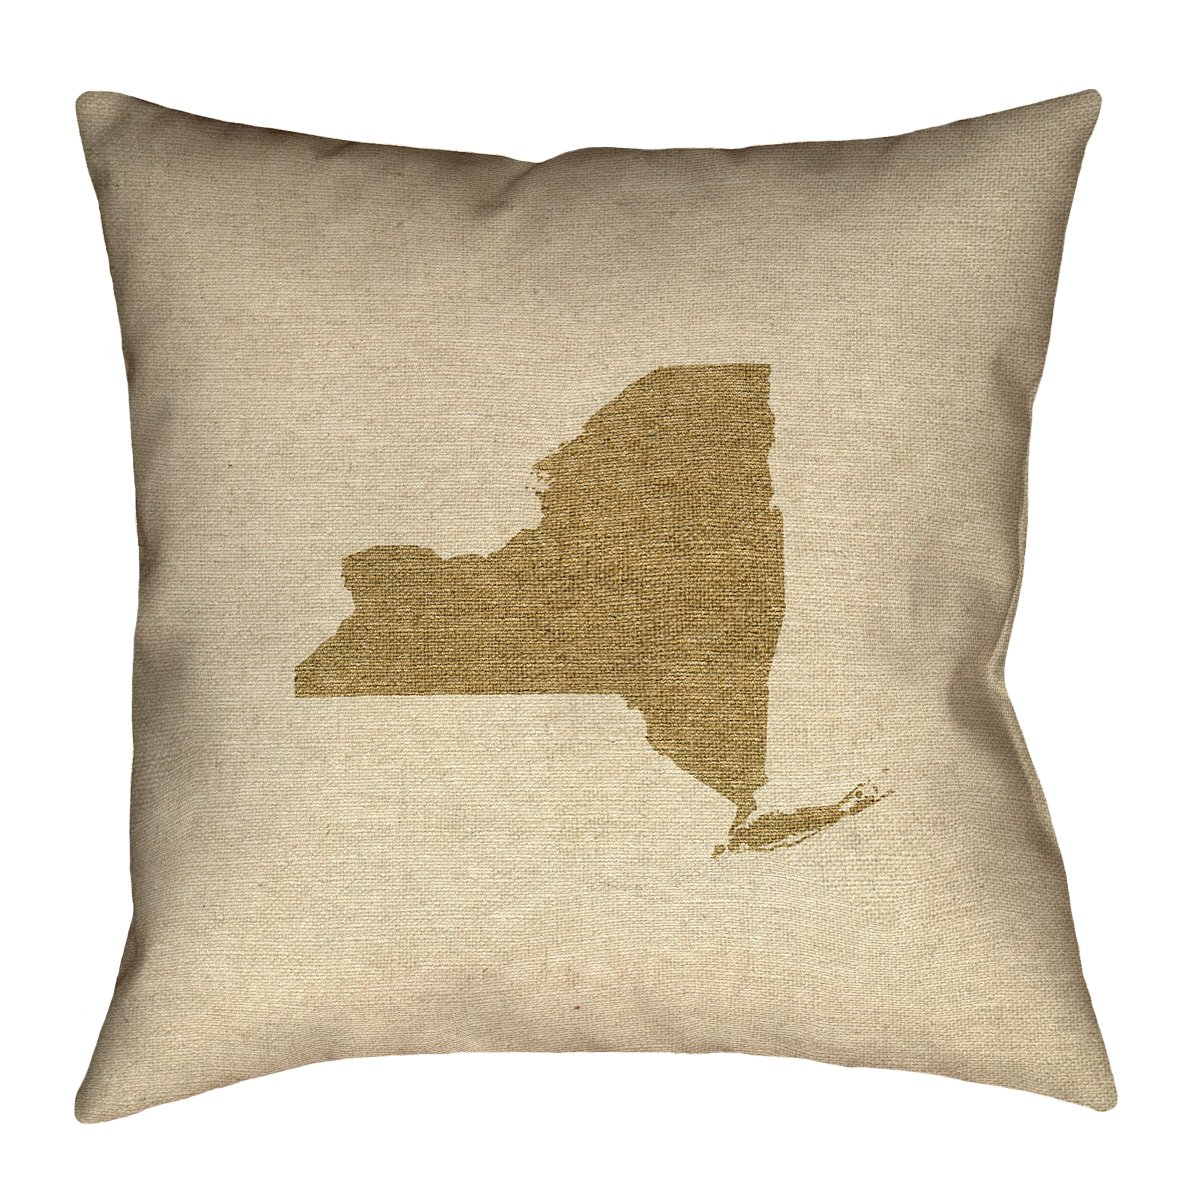 Double Sided Print with Concealed Zipper /& Insert ArtVerse Katelyn Smith New York Canvas 20 x 20 Pillow-Faux Linen Updated Fabric